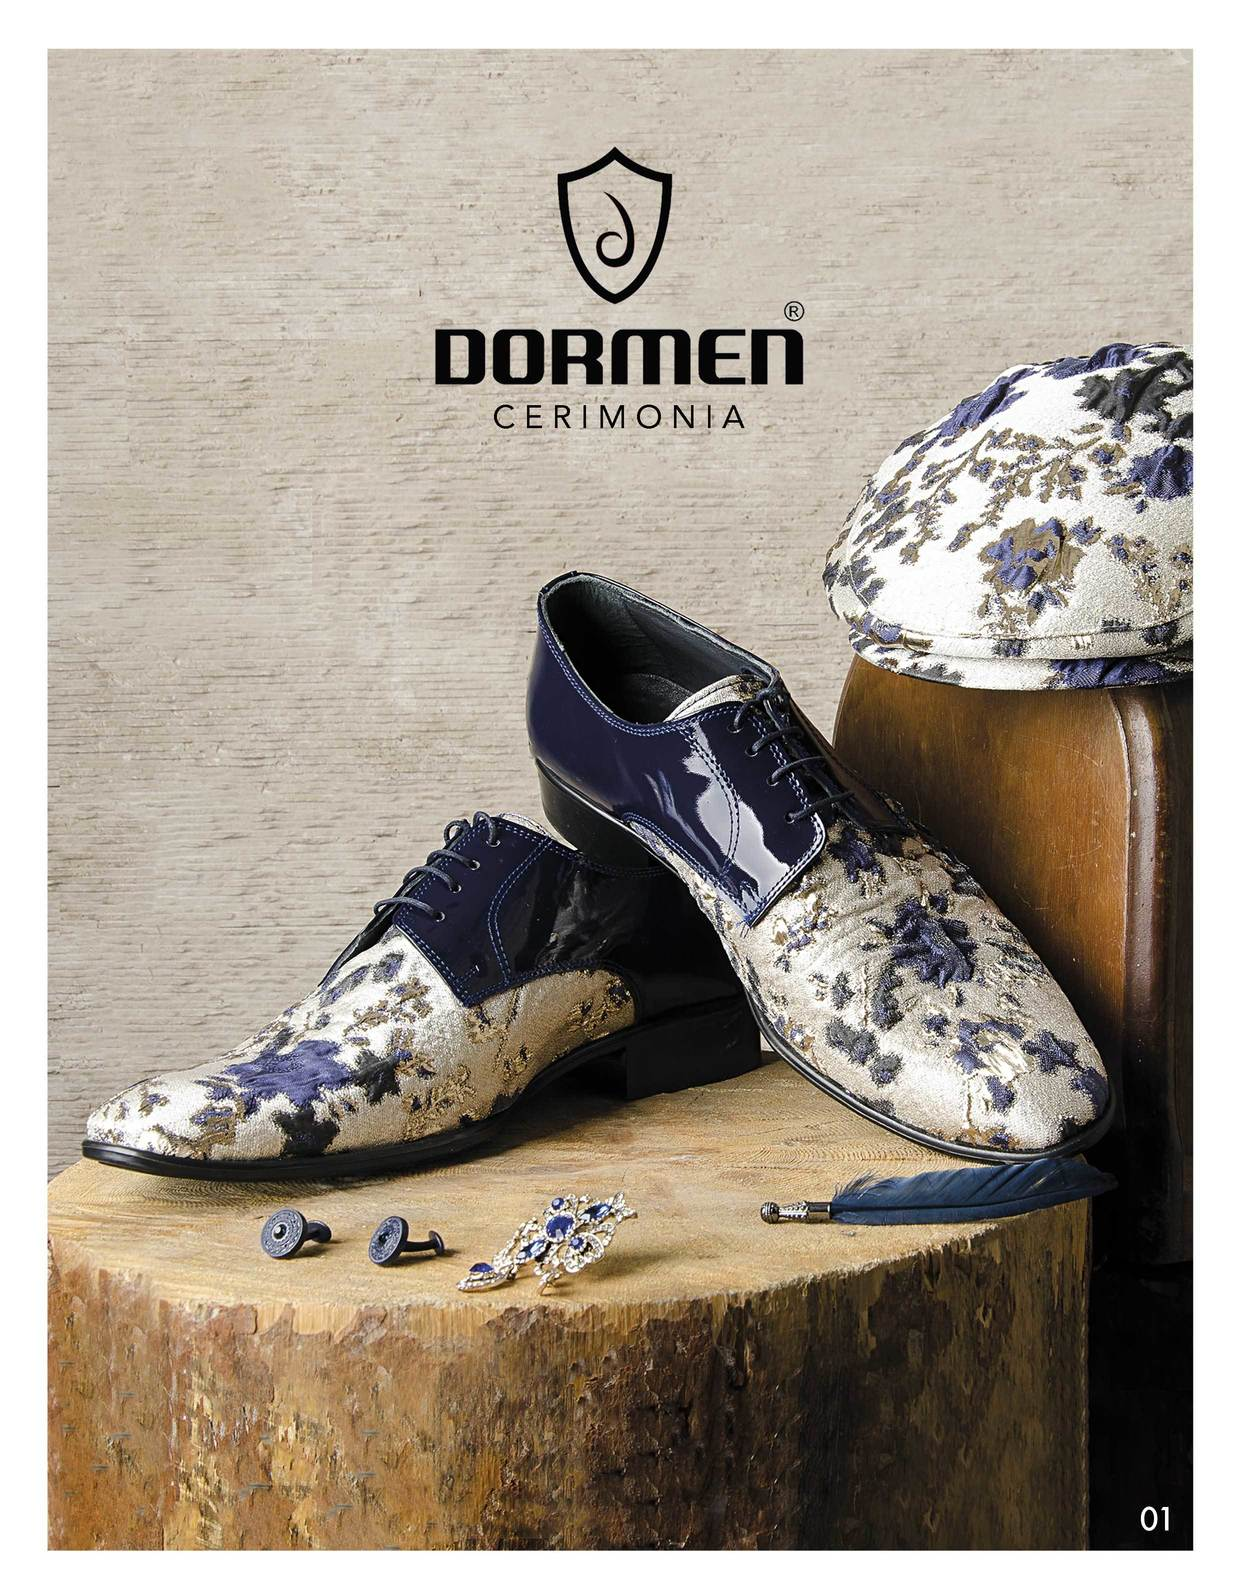 DORMEN CERIMONIA Collection Spring/Summer 2018